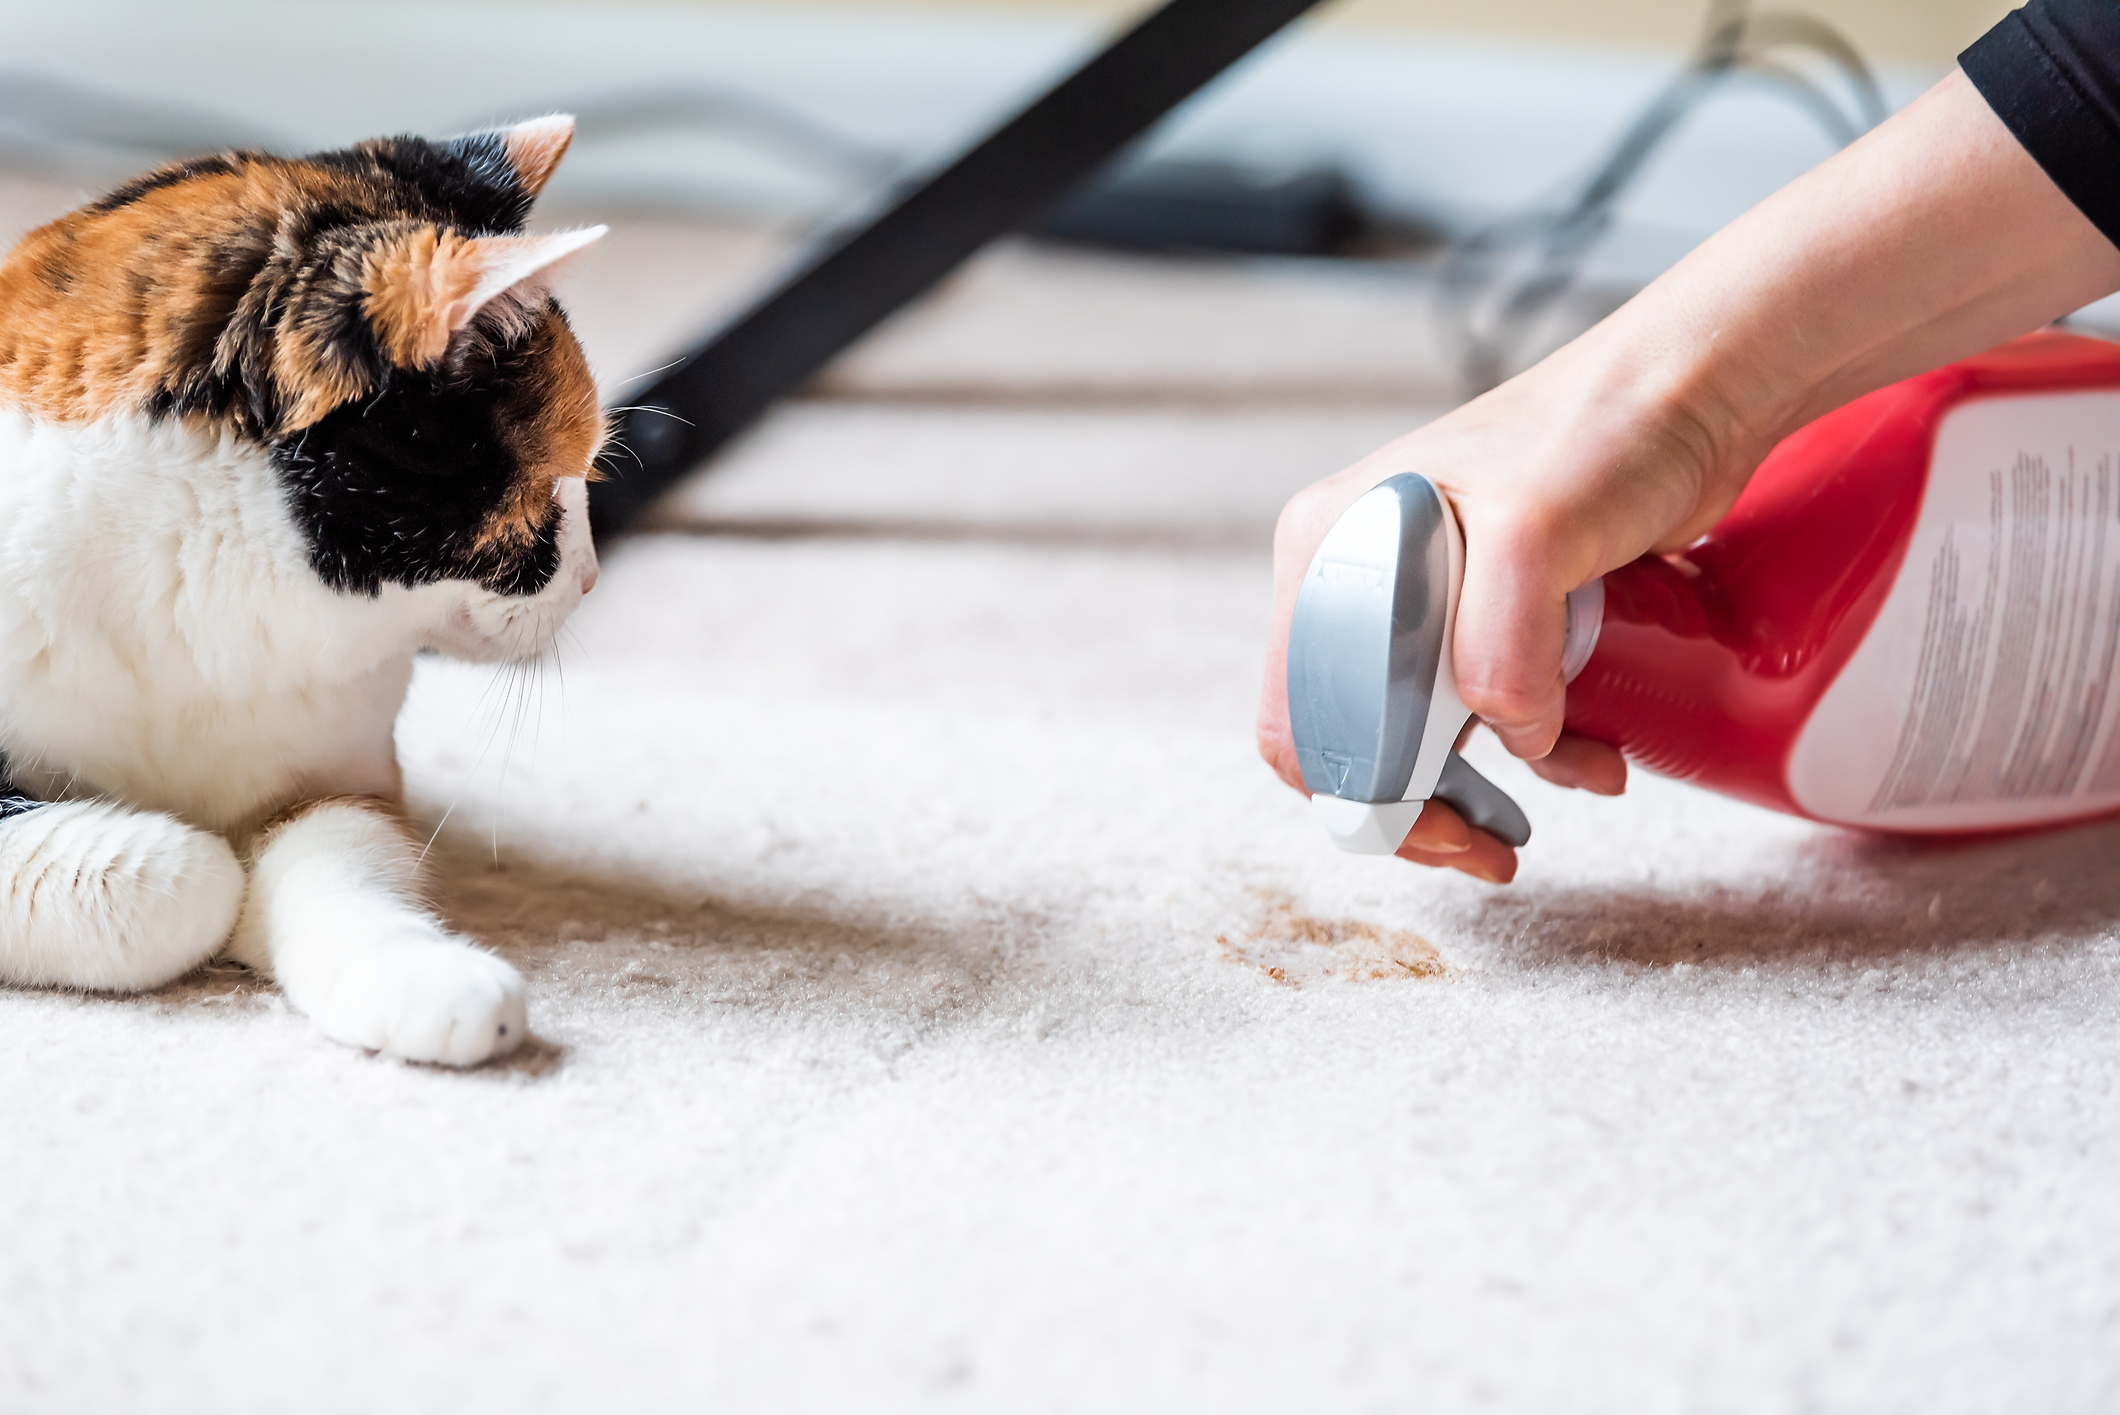 Closeup side profile of calico cat looking at mess on carpet